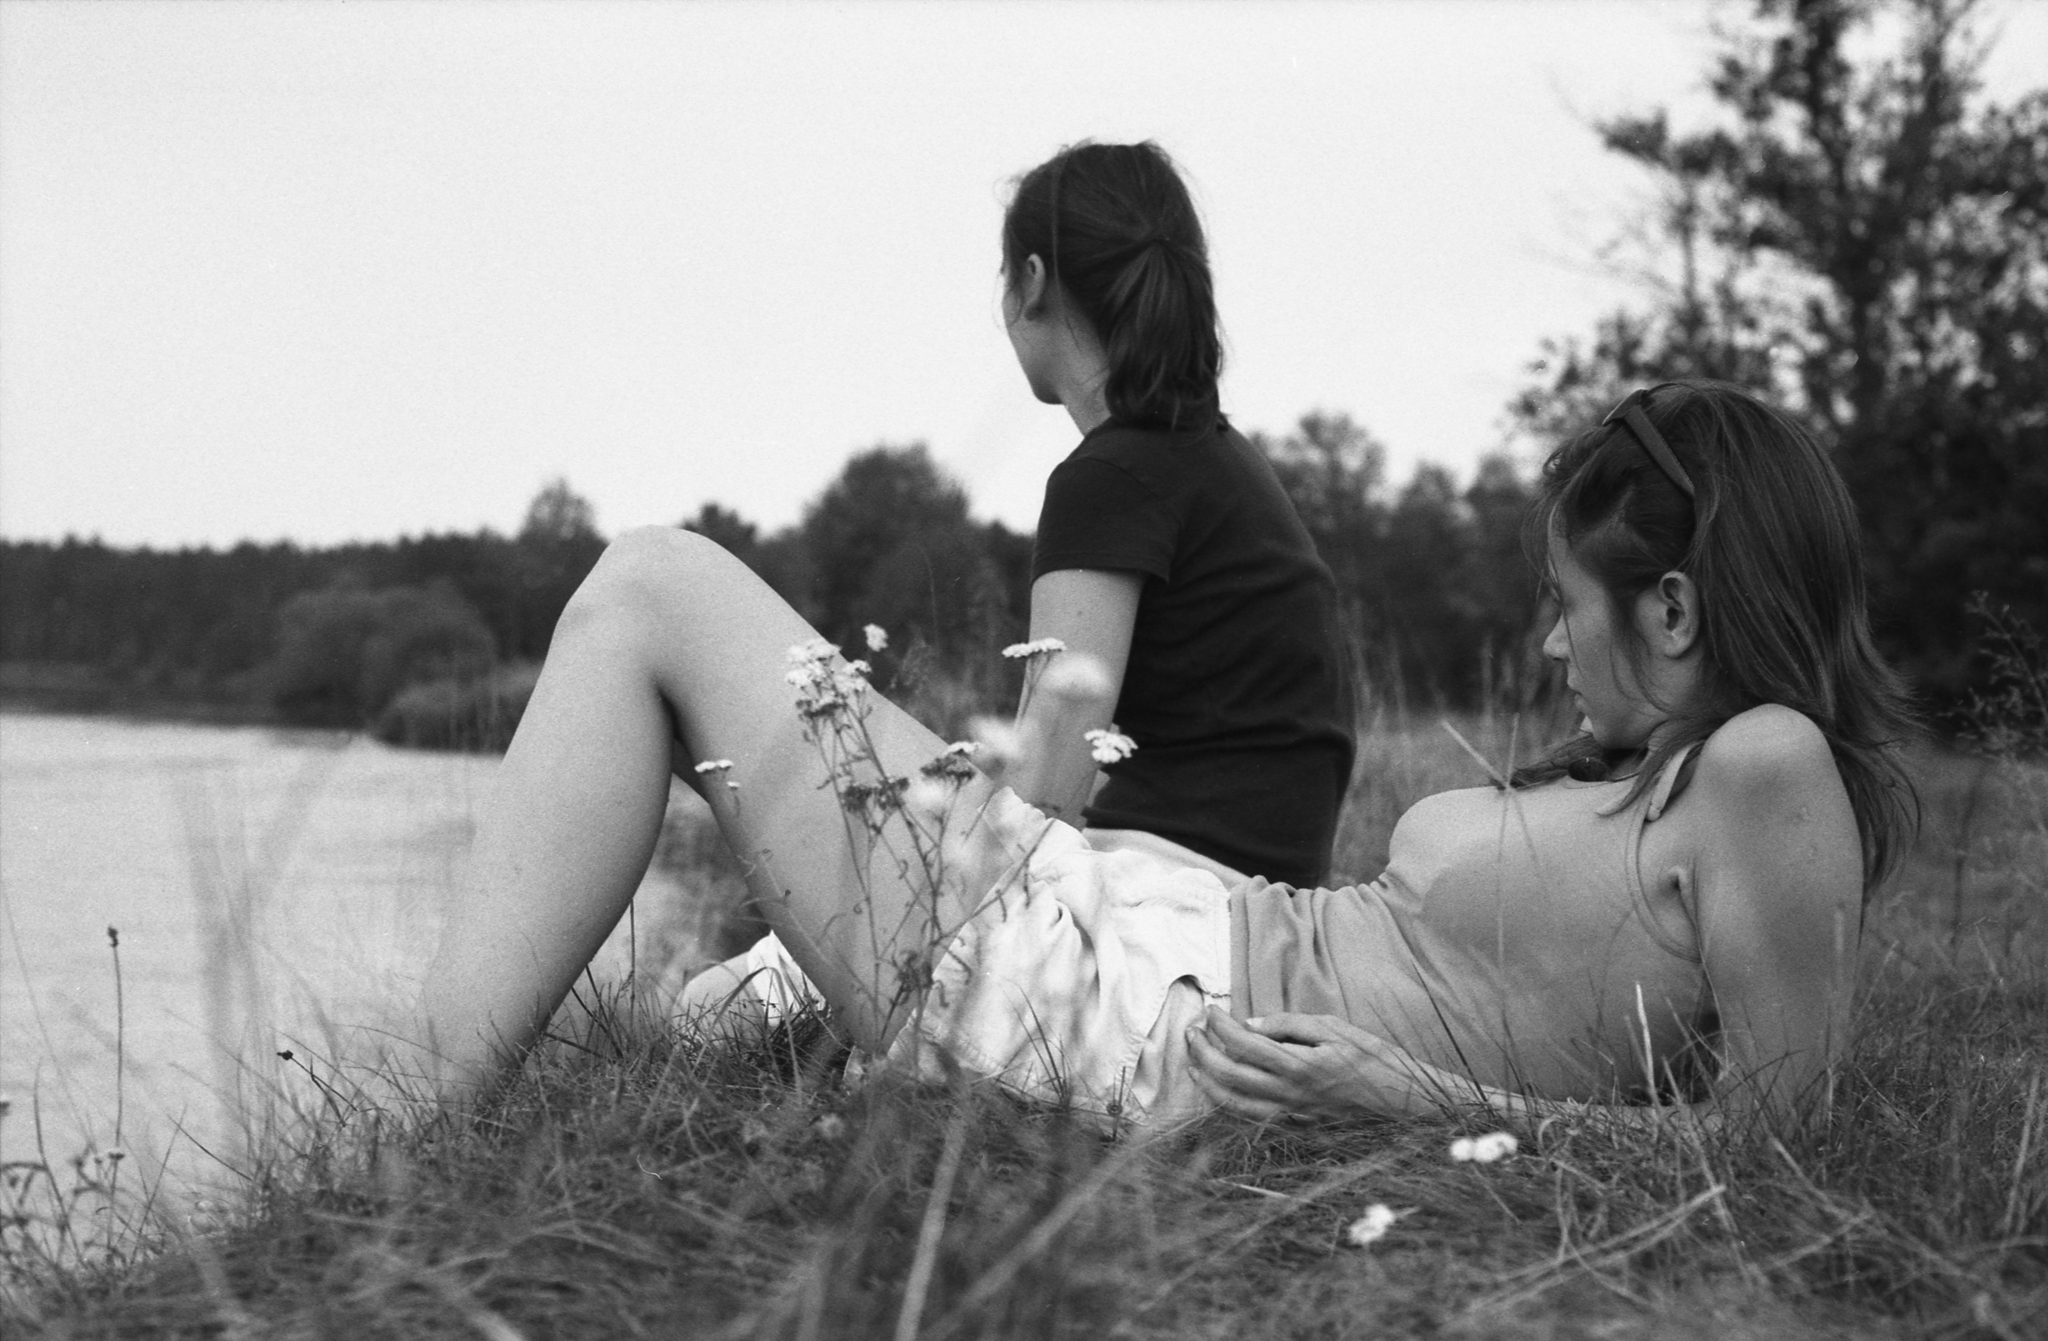 Ania and Kasia, Around Warka, Poland, 2009